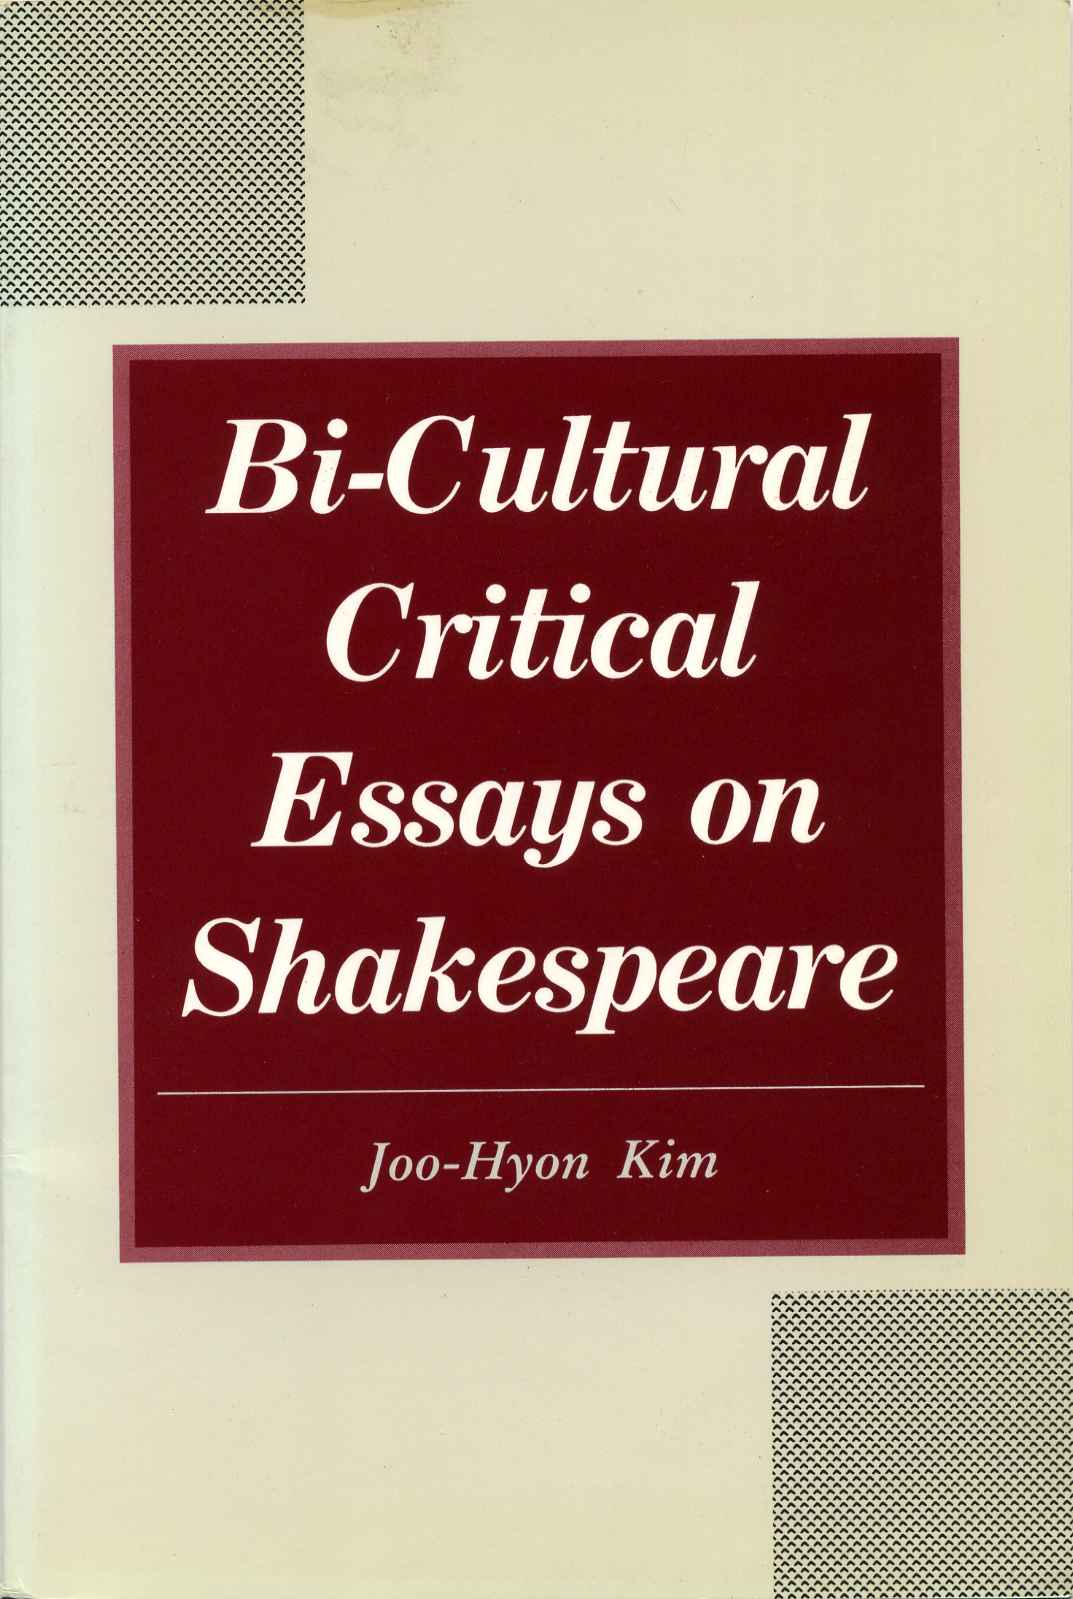 Essay Of Pollution Bicultural Critical Essays On Shakespeare With A Letter Handwritten And  Signed By Kim Joohyon  Joohyon Kim  Reprint Edition Contextual Essay also Descriptive Analysis Essay Bicultural Critical Essays On Shakespeare With A Letter  Invention Essay